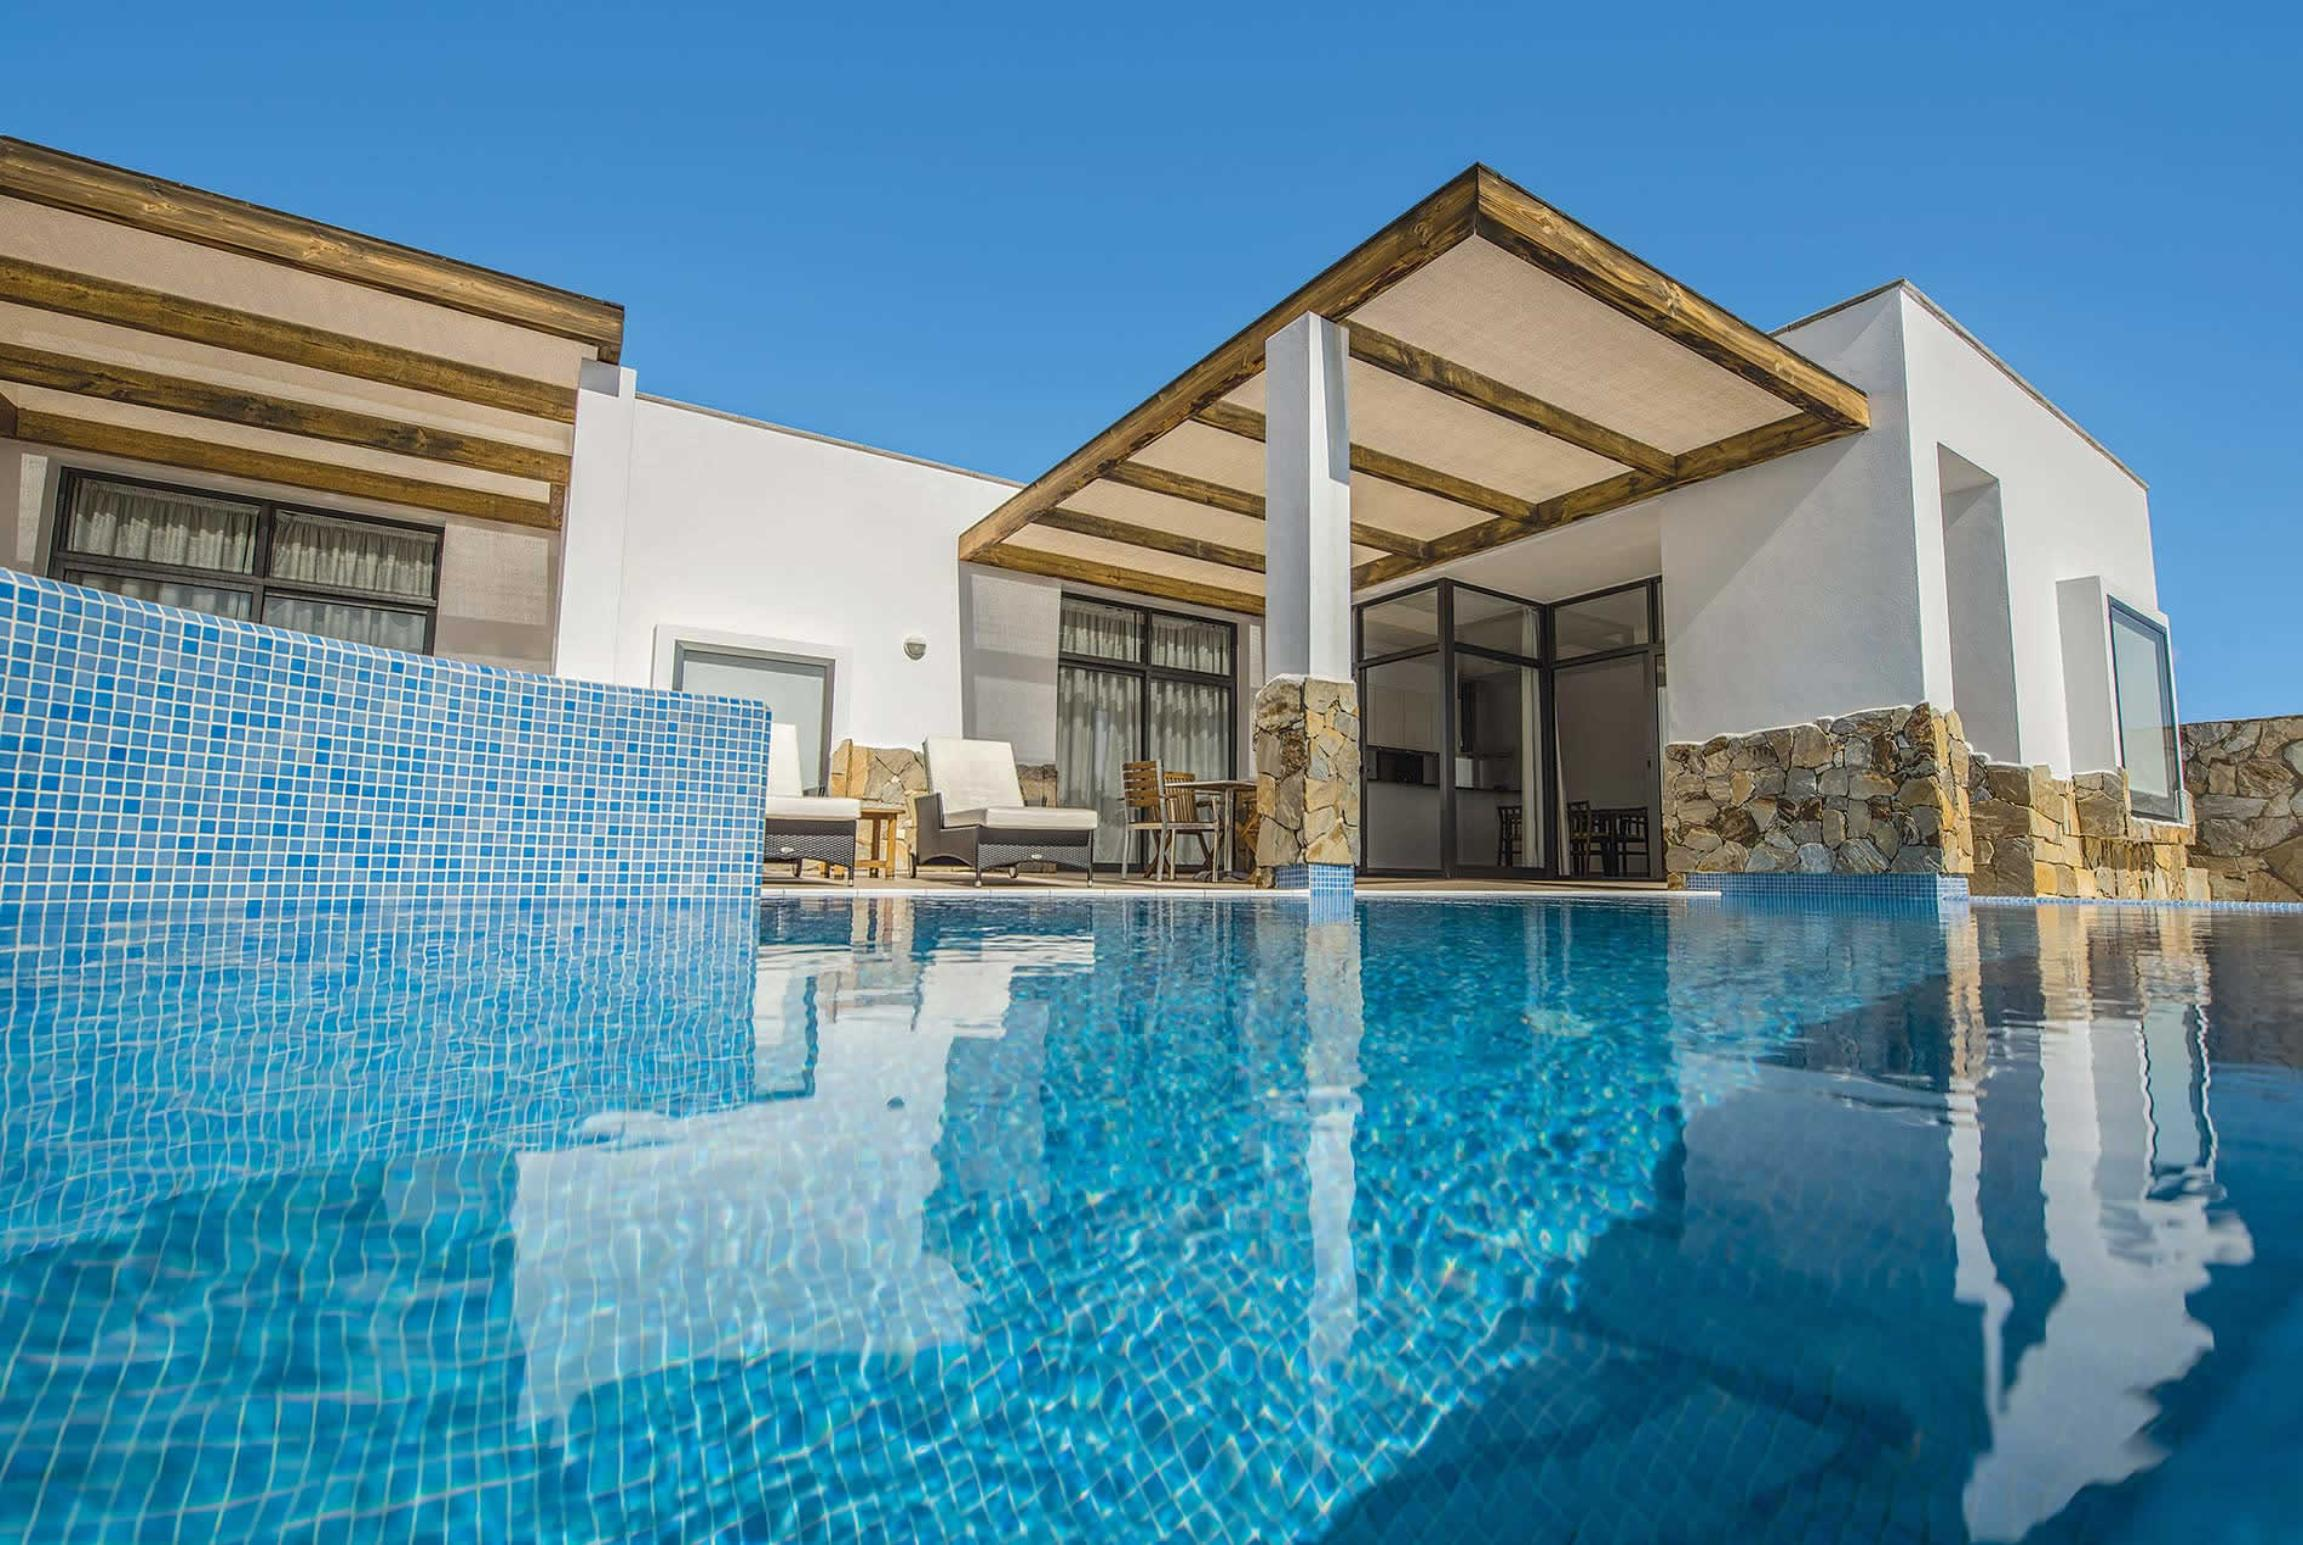 Read more about Villas Playitas villa